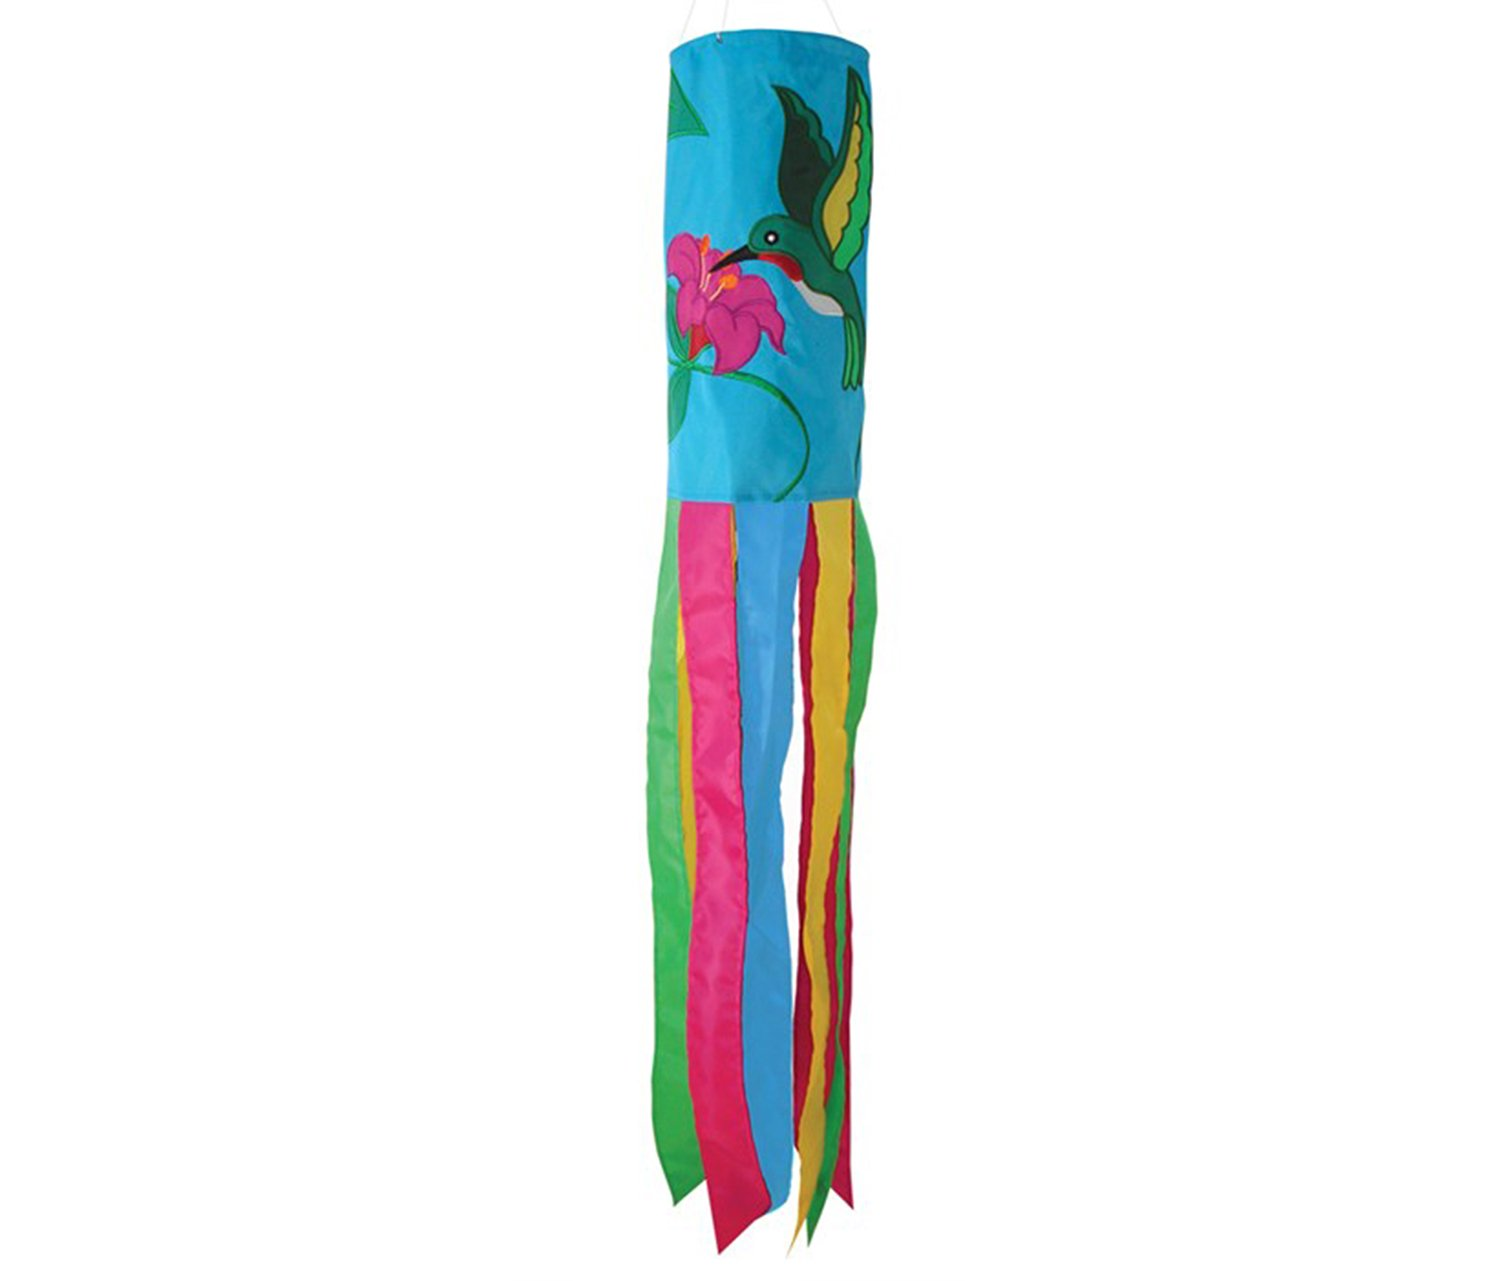 Mozlly Multipack - In the Breeze Blue Colorful Hummingbird Windsock - 6 x 40 inches - Hanging Novelty Patio Decor (Pack of 6) - Item #S115043_X6 by Mozlly